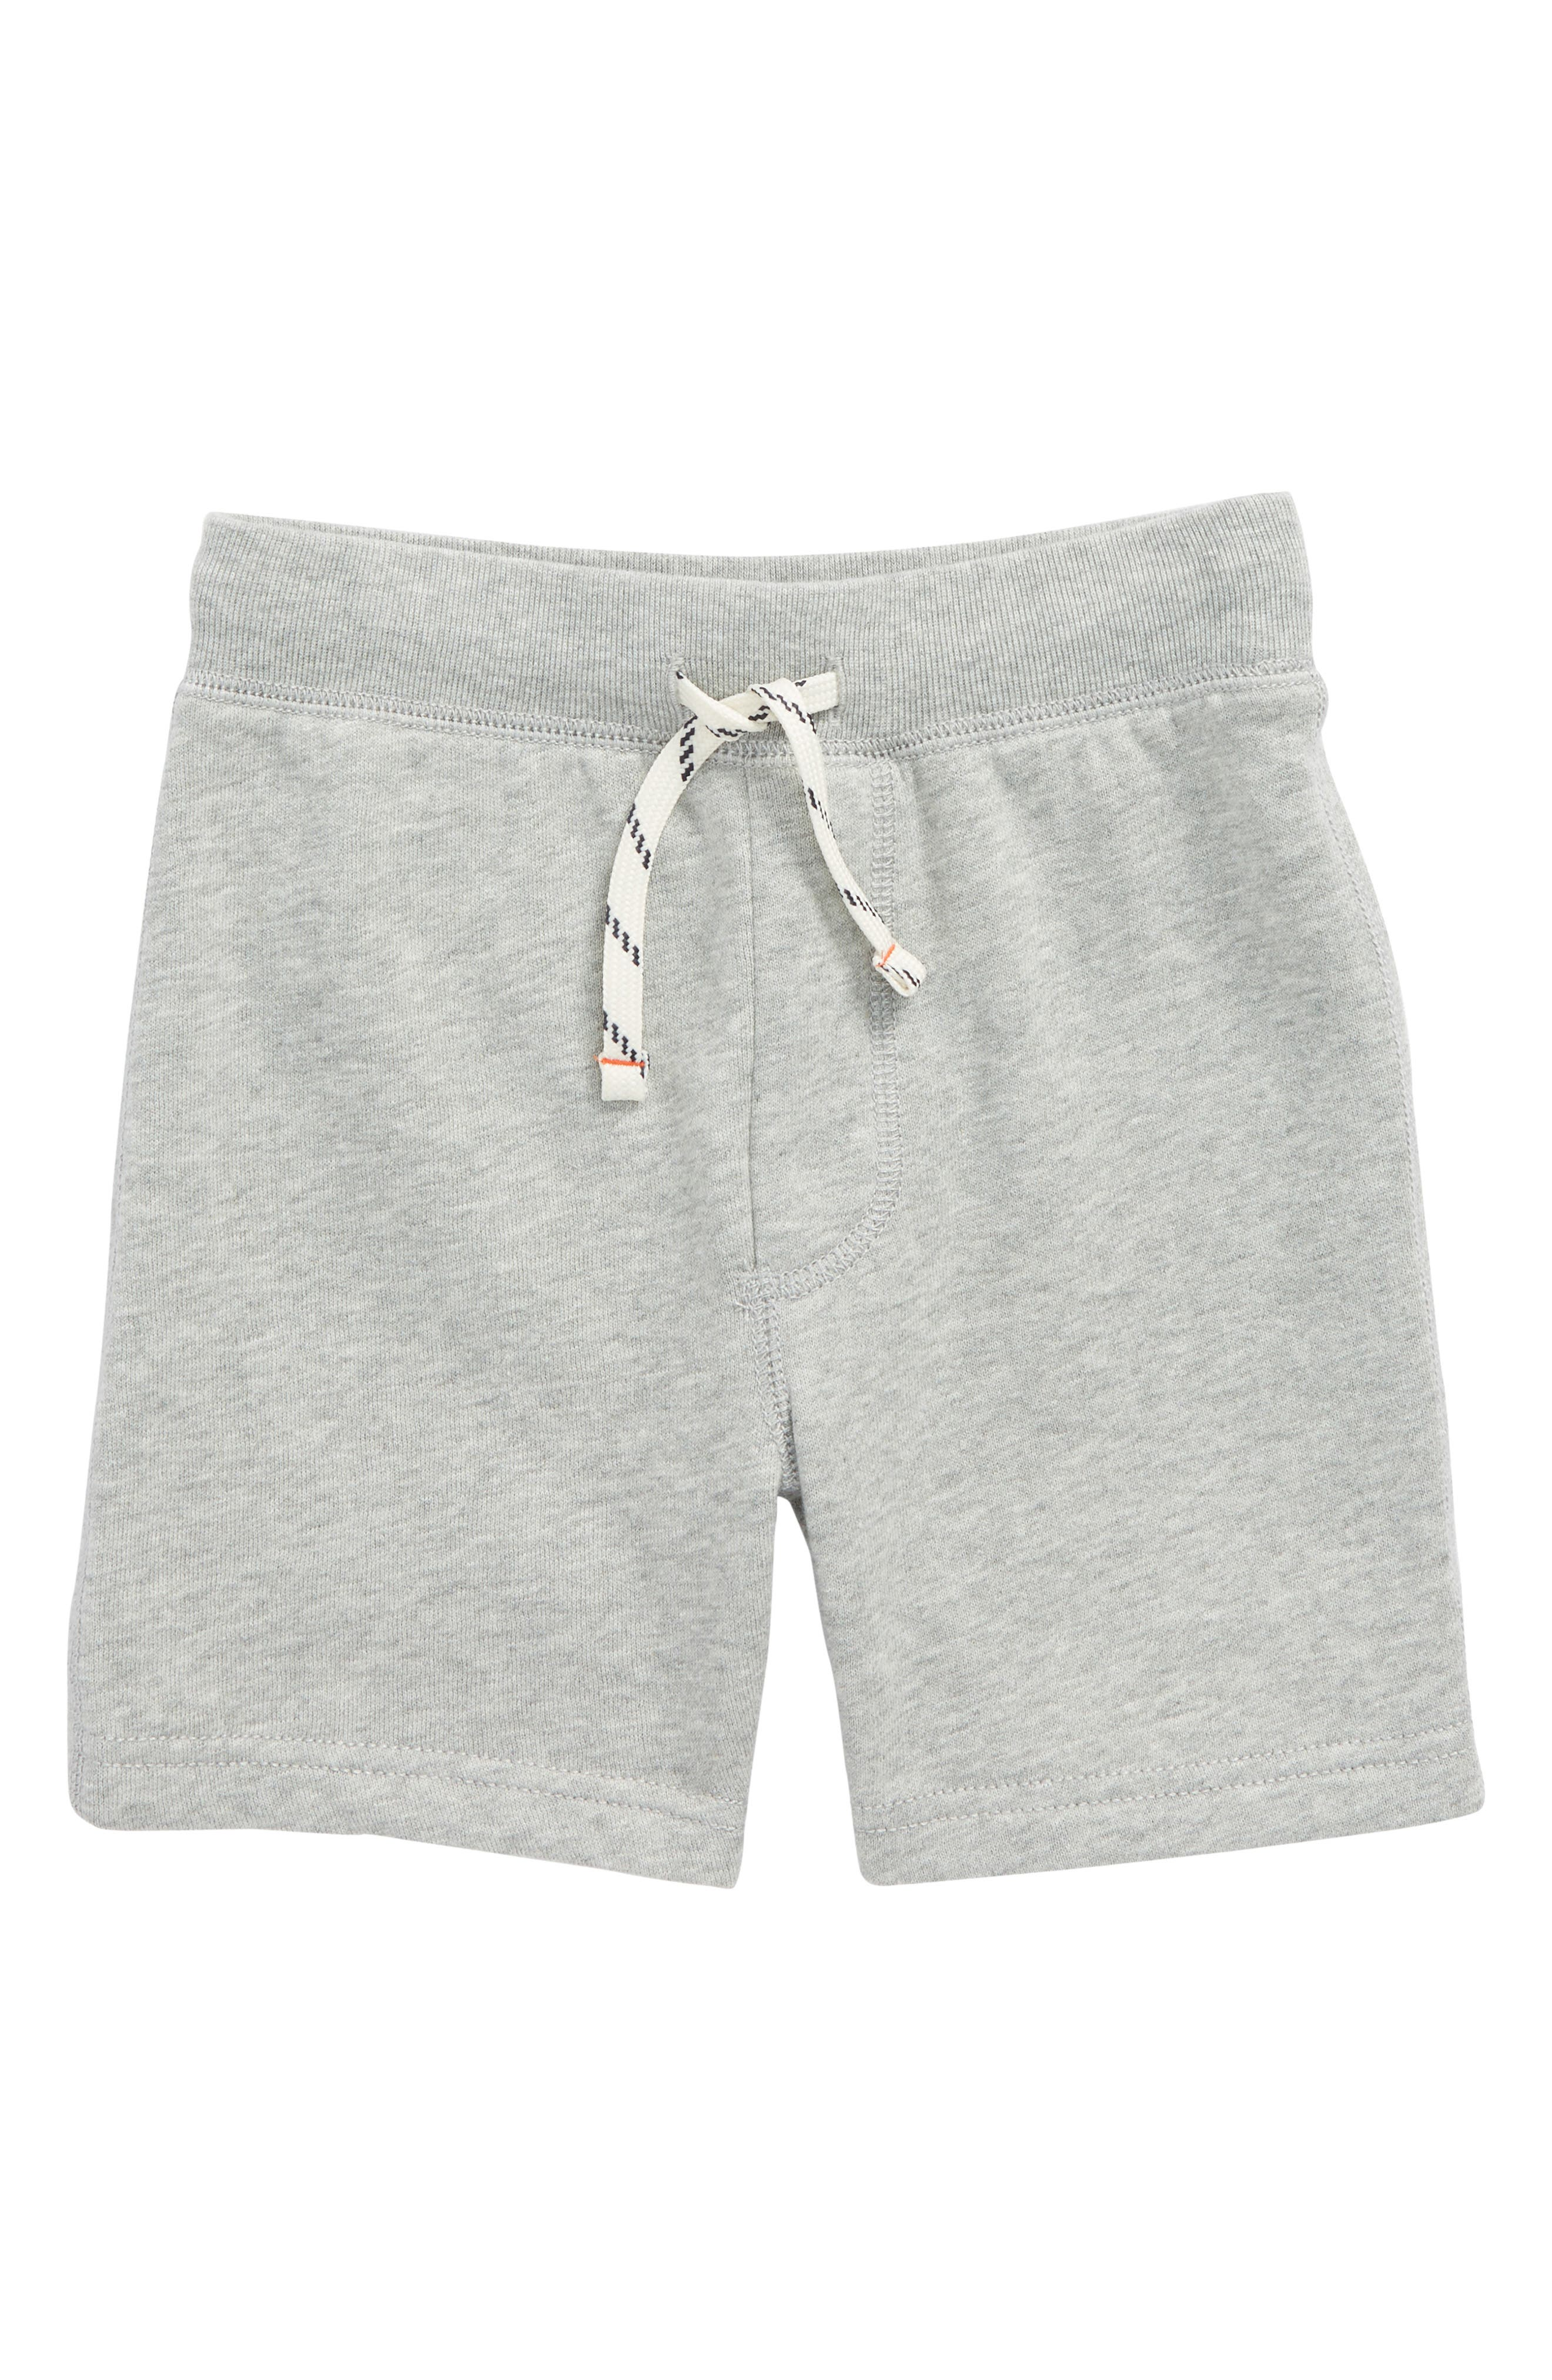 Classic Sweat Shorts,                         Main,                         color, 020